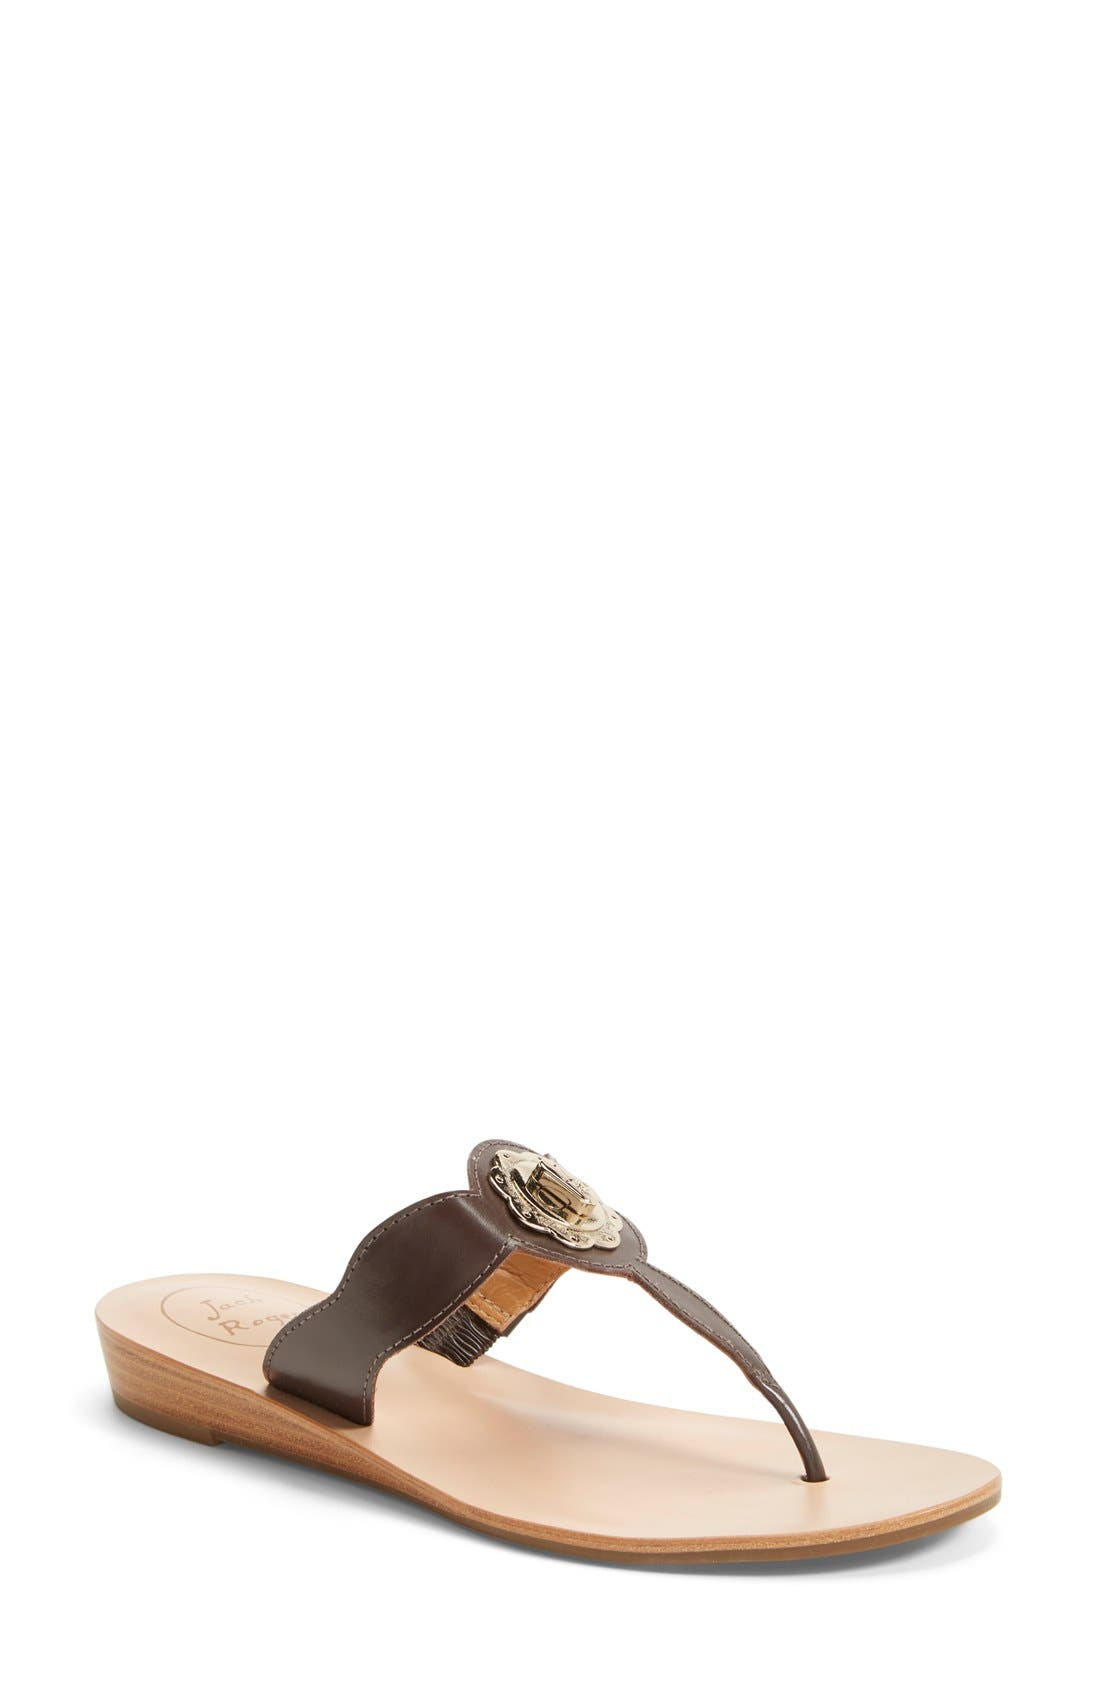 Alternate Image 1 Selected - Jack Rogers 'Larissa' Leather Thong Sandal (Women)